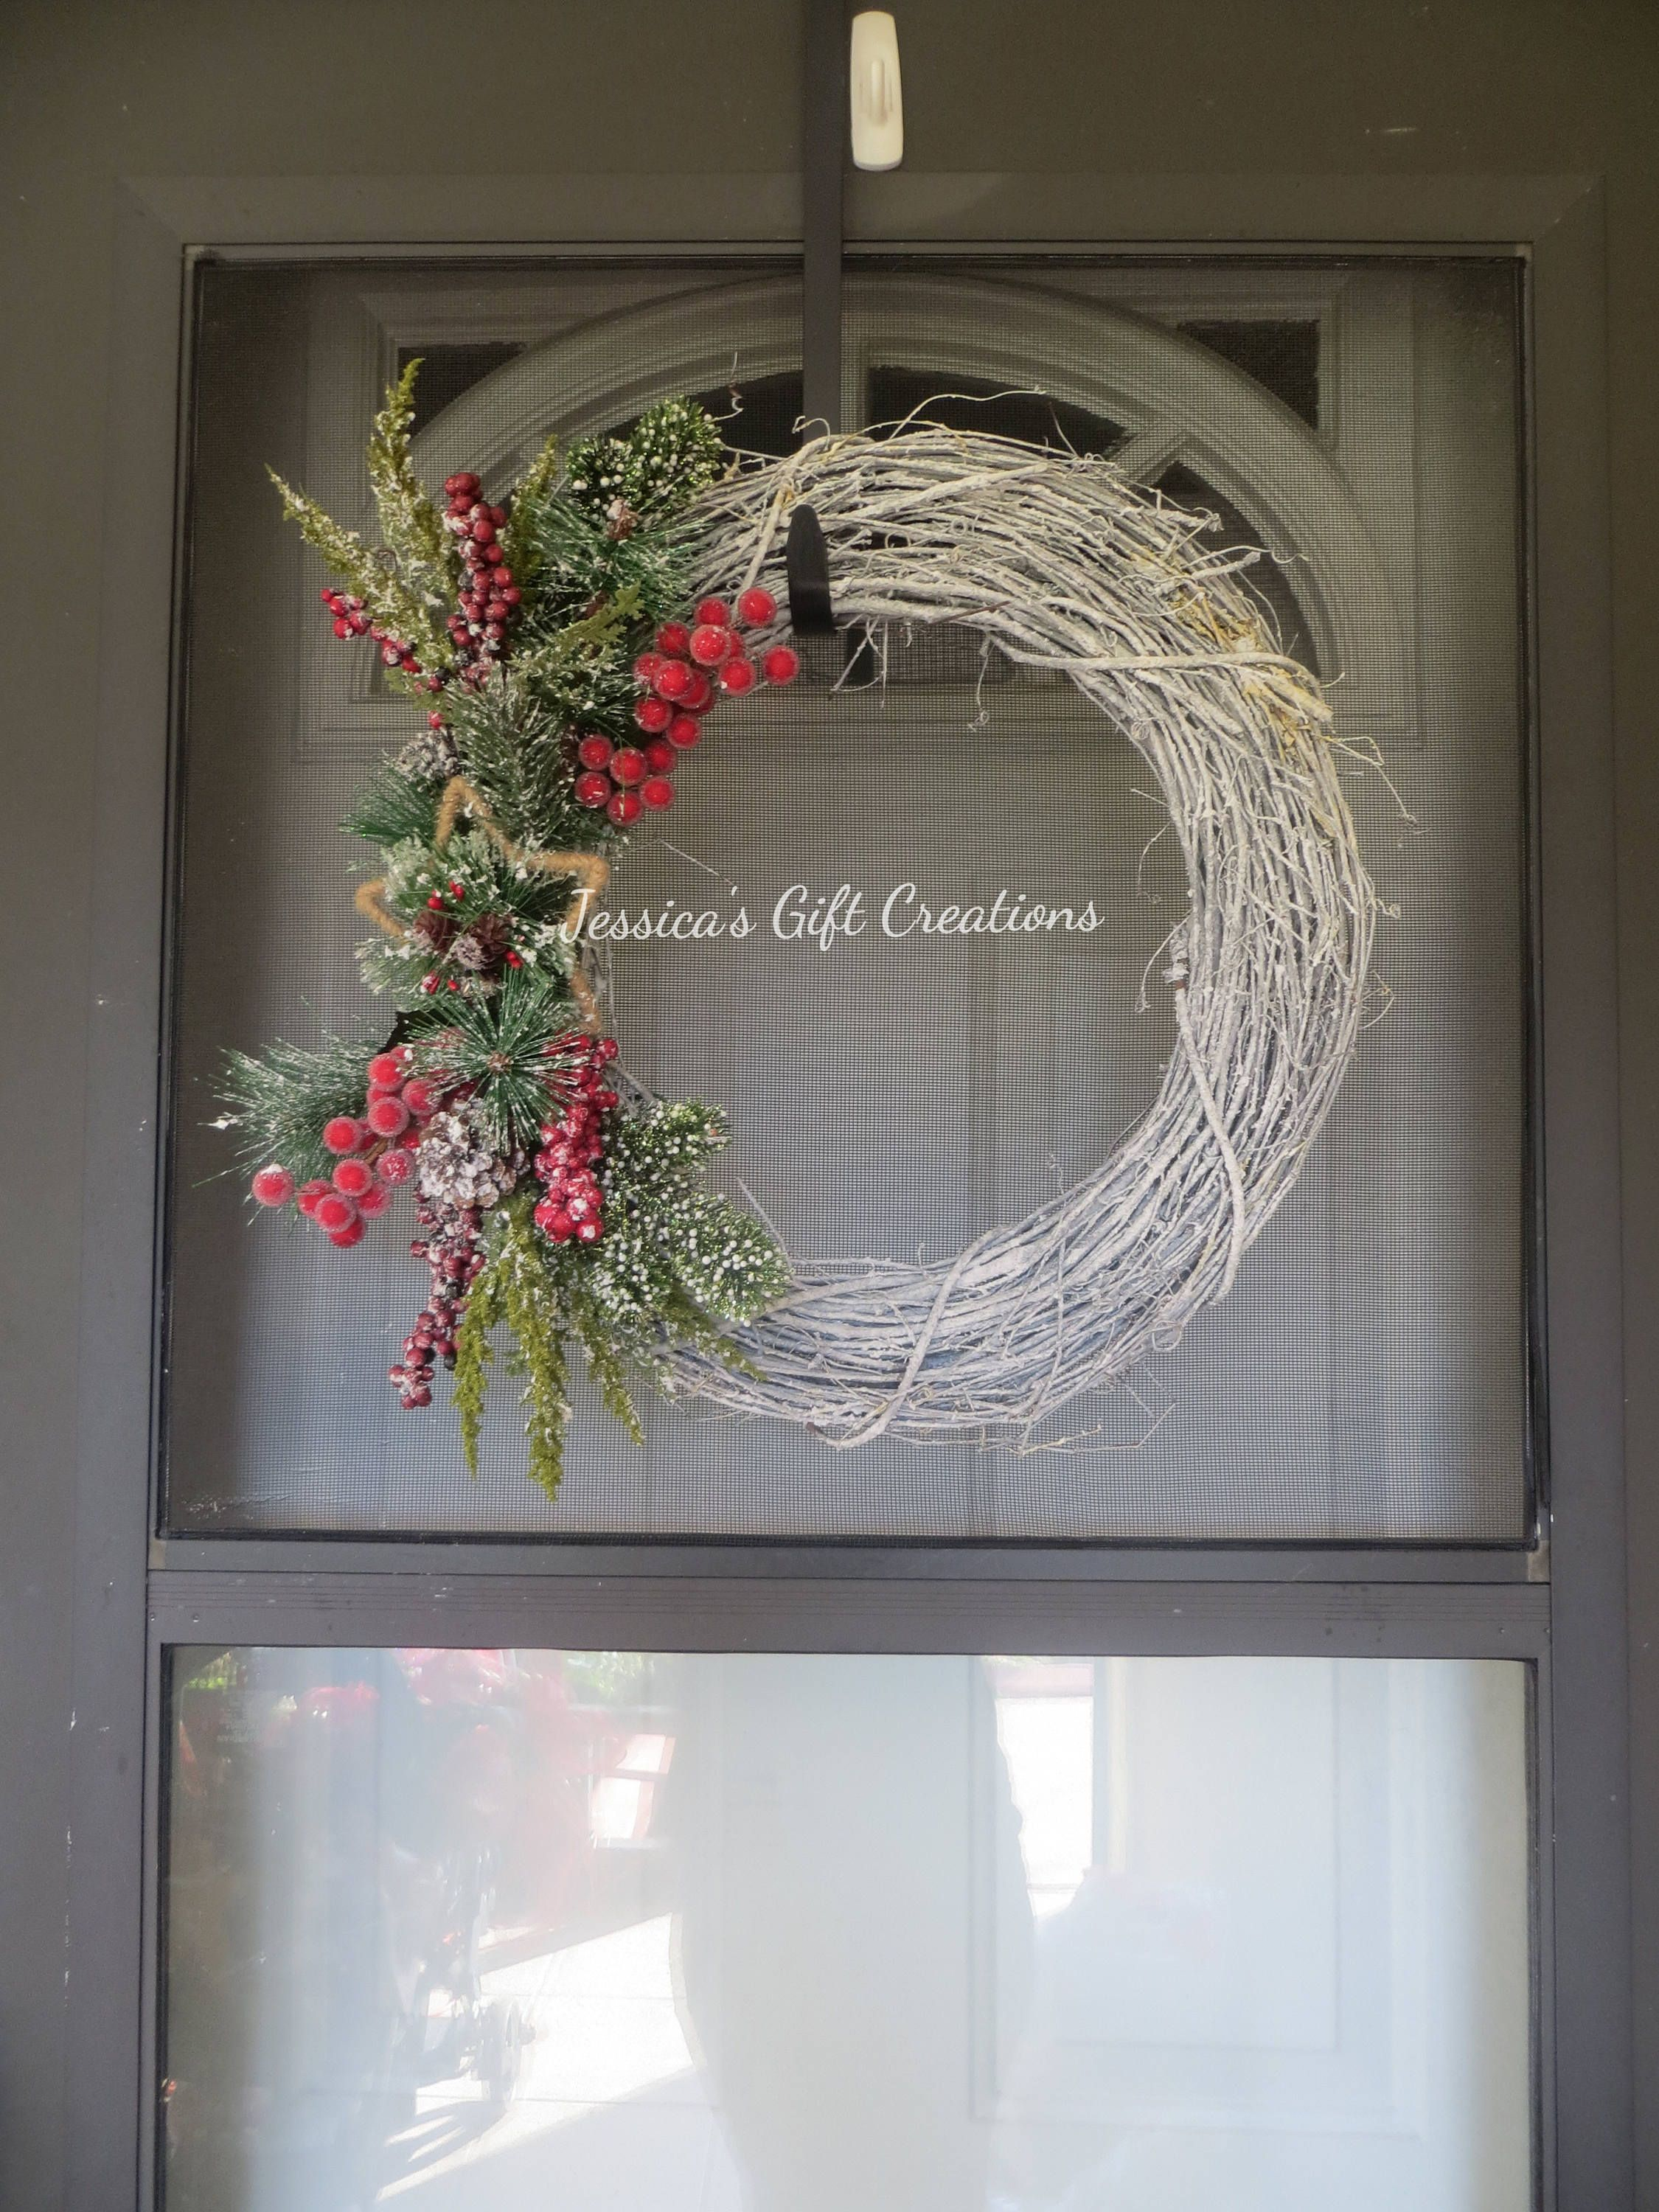 Ready To Ship Winter Grapevine Wreath/Holiday Wreath/Front Door Wreath/ Seasonal Decor